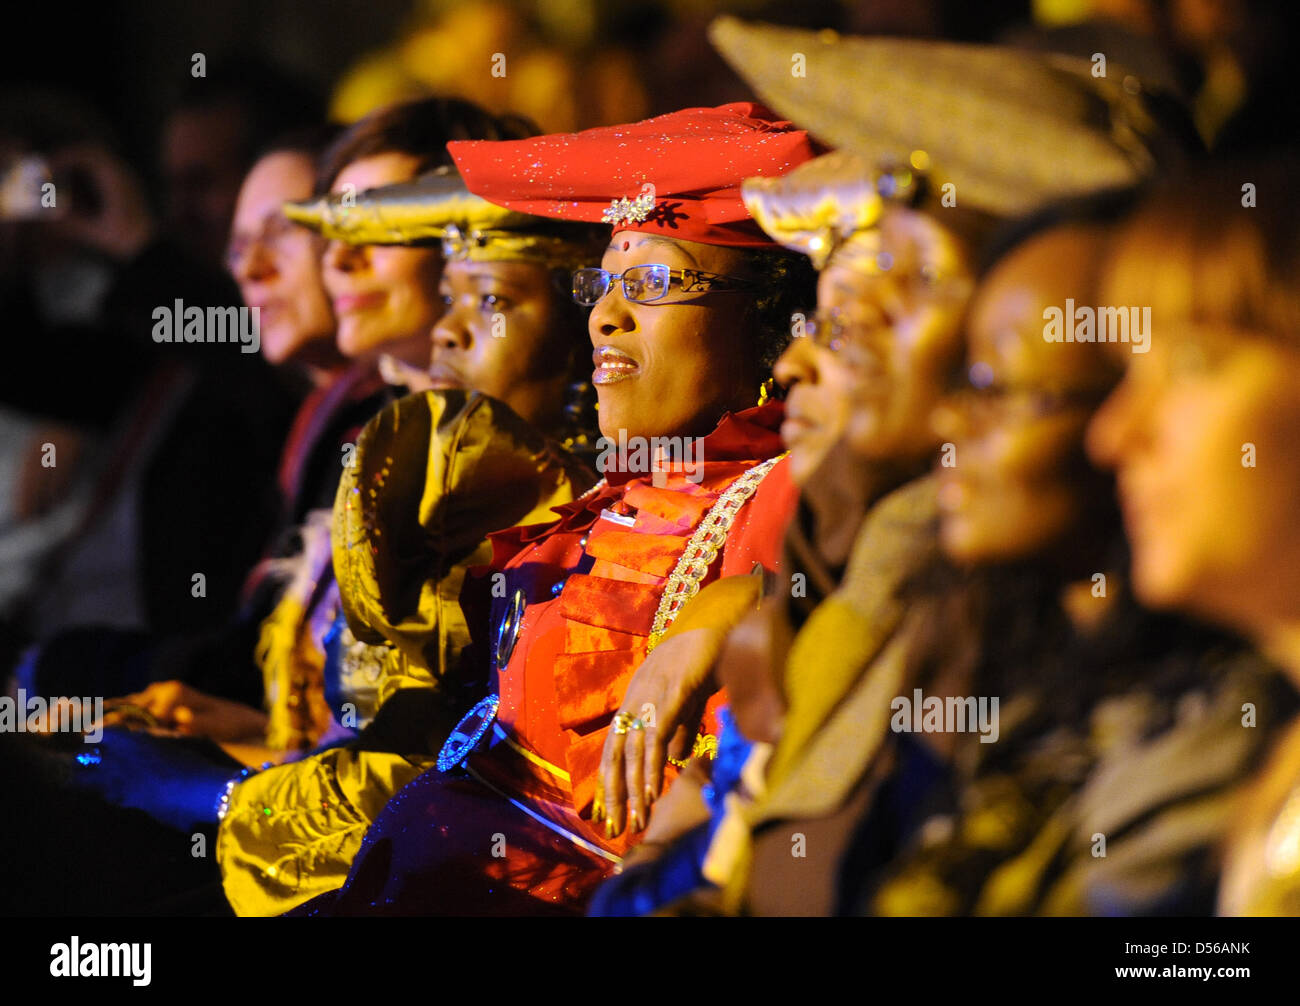 Women wearing the traditional dress of Herero people attend a fashion show in Berlin, Germany, 10 November 2010. Stock Photo